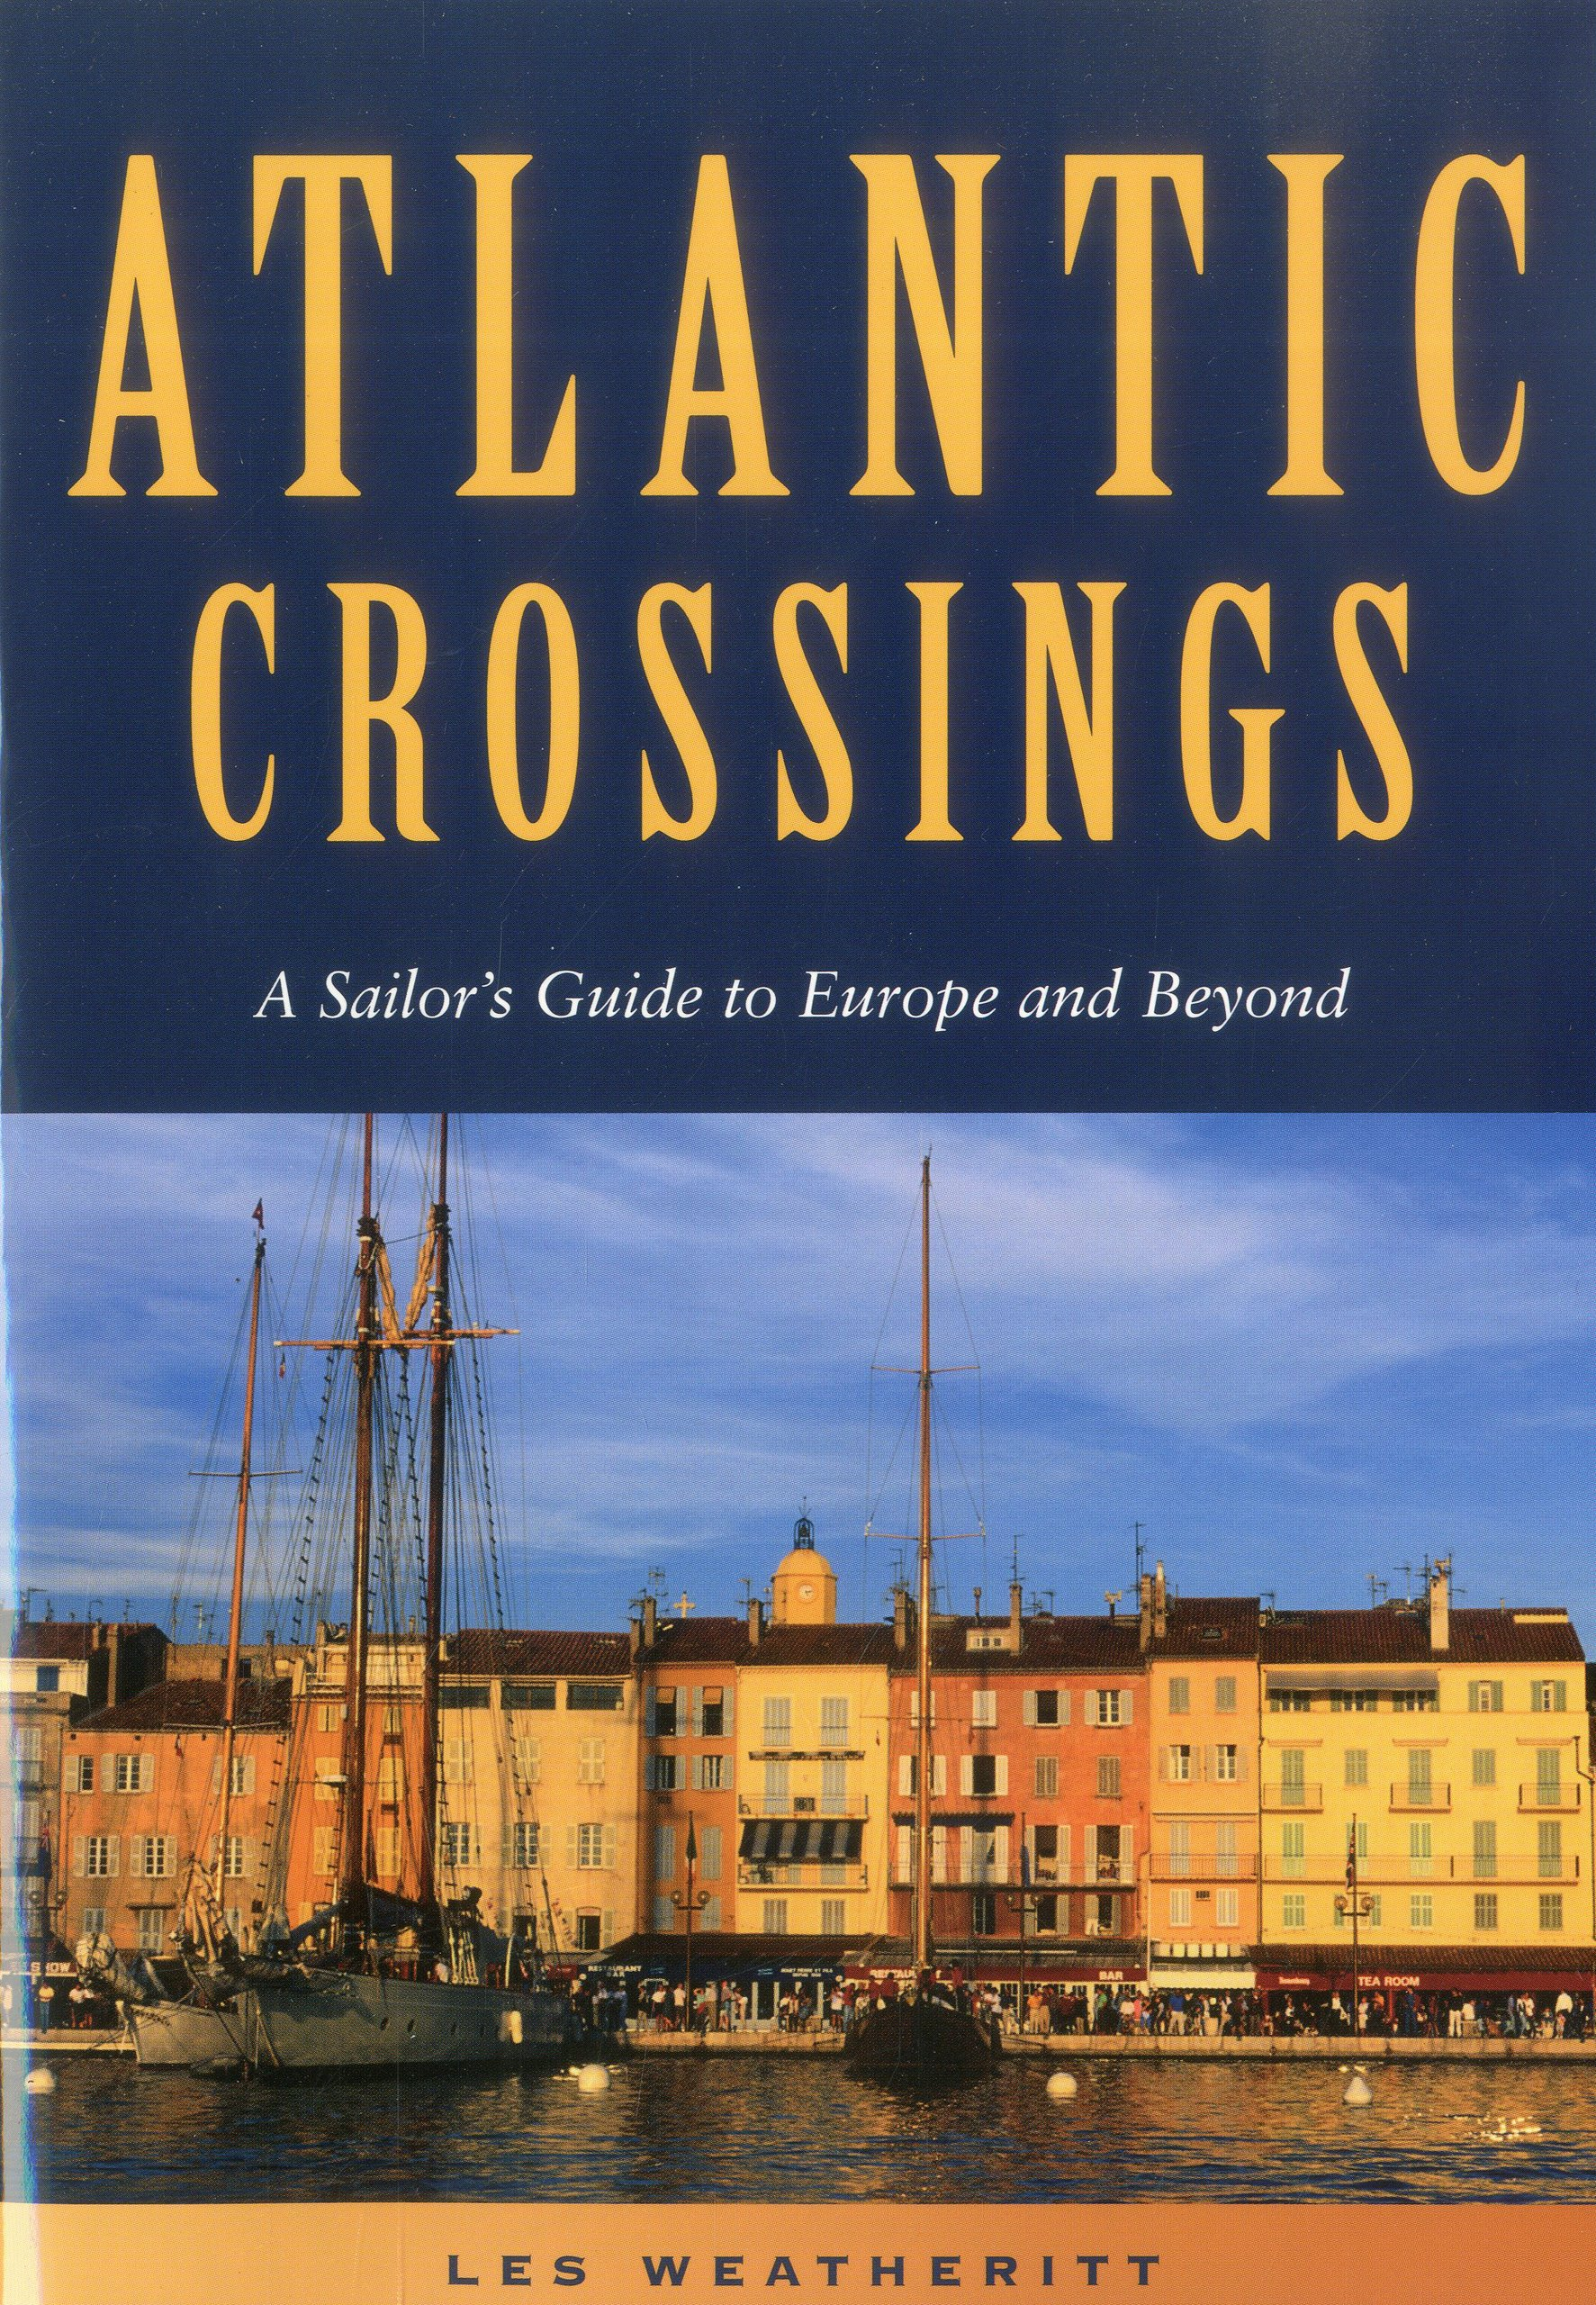 Atlantic Crossings: A Sailor's Guide to Europe and Beyond